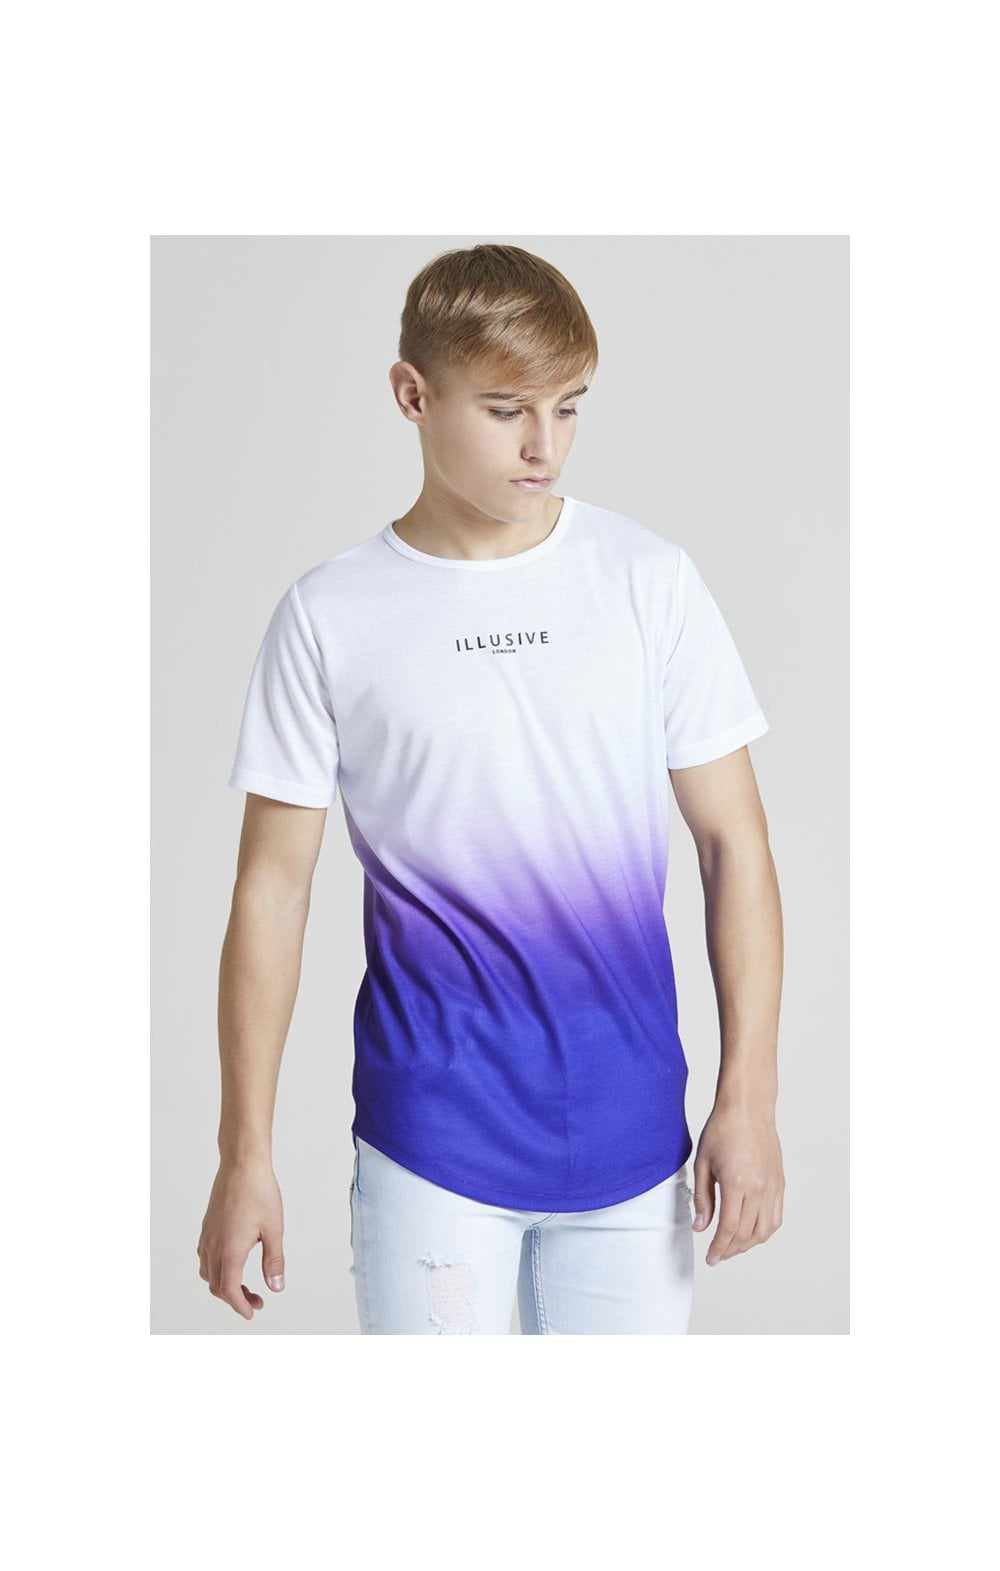 Illusive London Core T-Shirt Verblasst - Weiß und Lila (1)